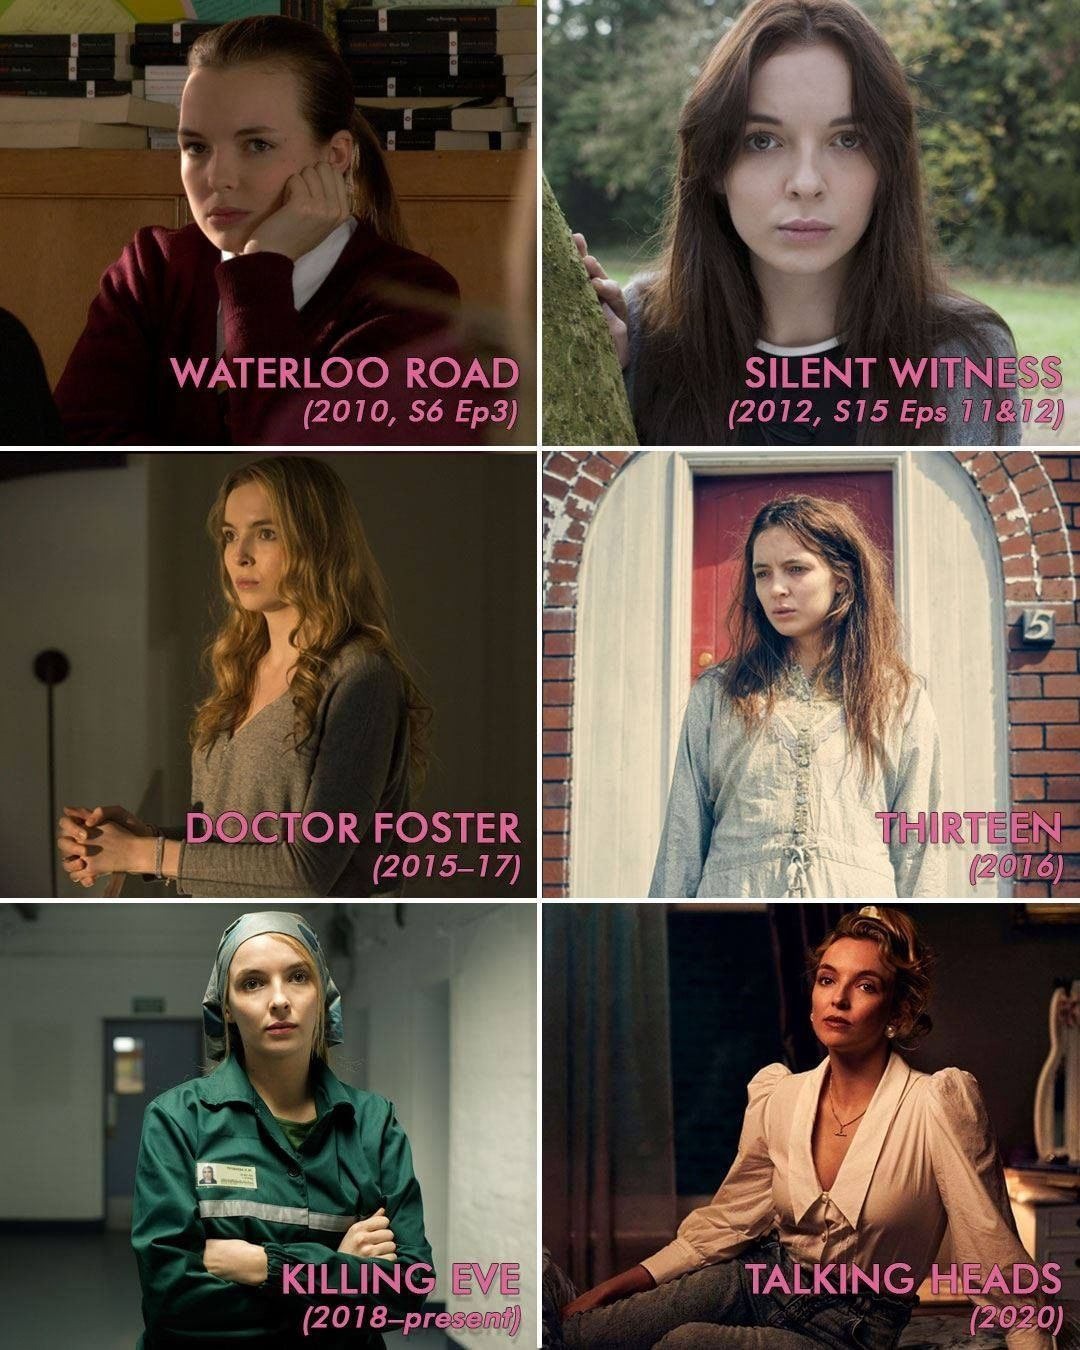 Bbc Iplayer On Instagram There Are Six Ways To Watch Jodie Comer On Bbc Iplayer And I M Going To Watch Them All In Chrono Jodie Comer Talking Heads Dr Foster